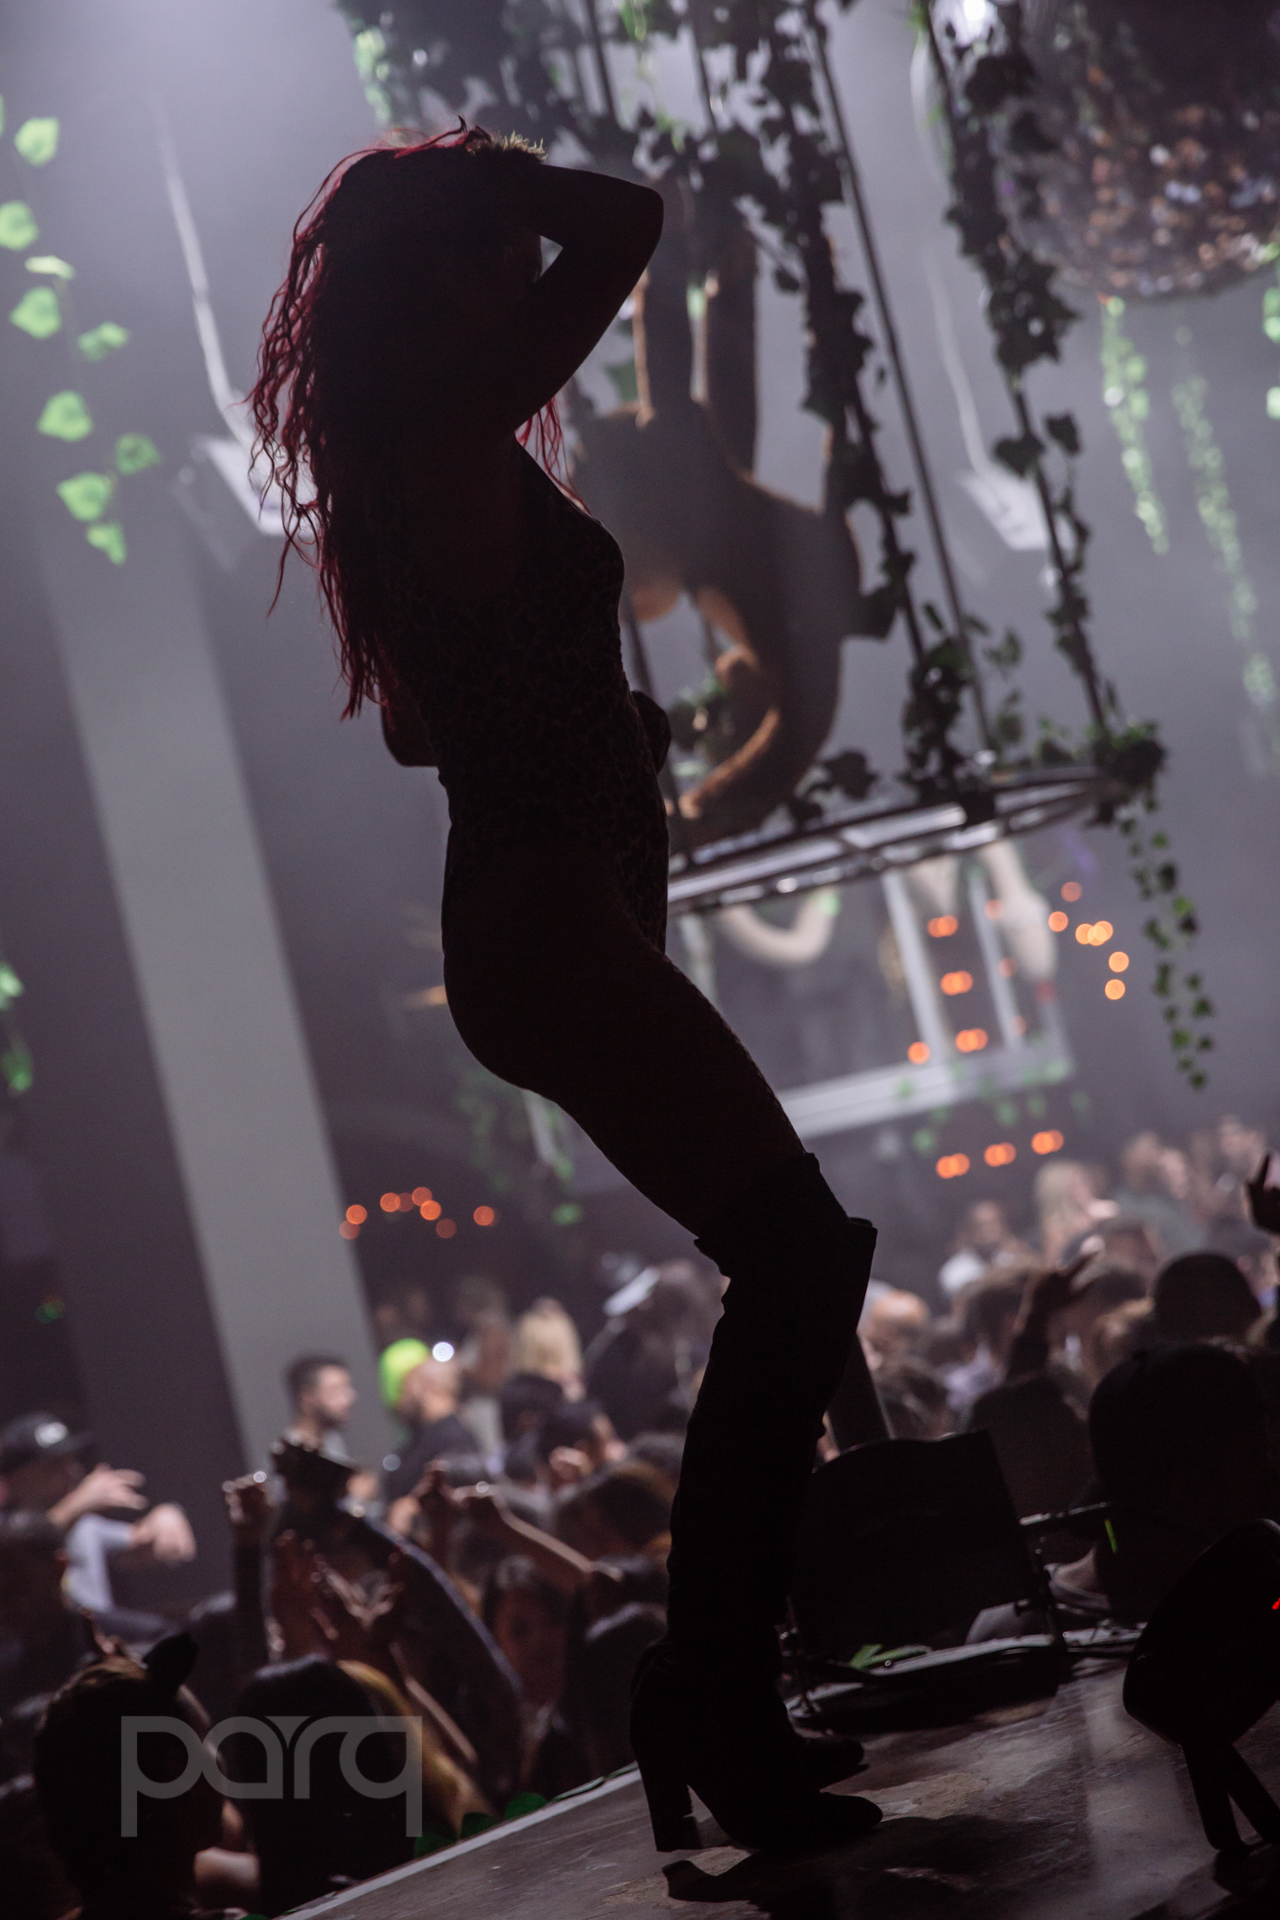 06.24.17 Zoo Funktion-18.jpg